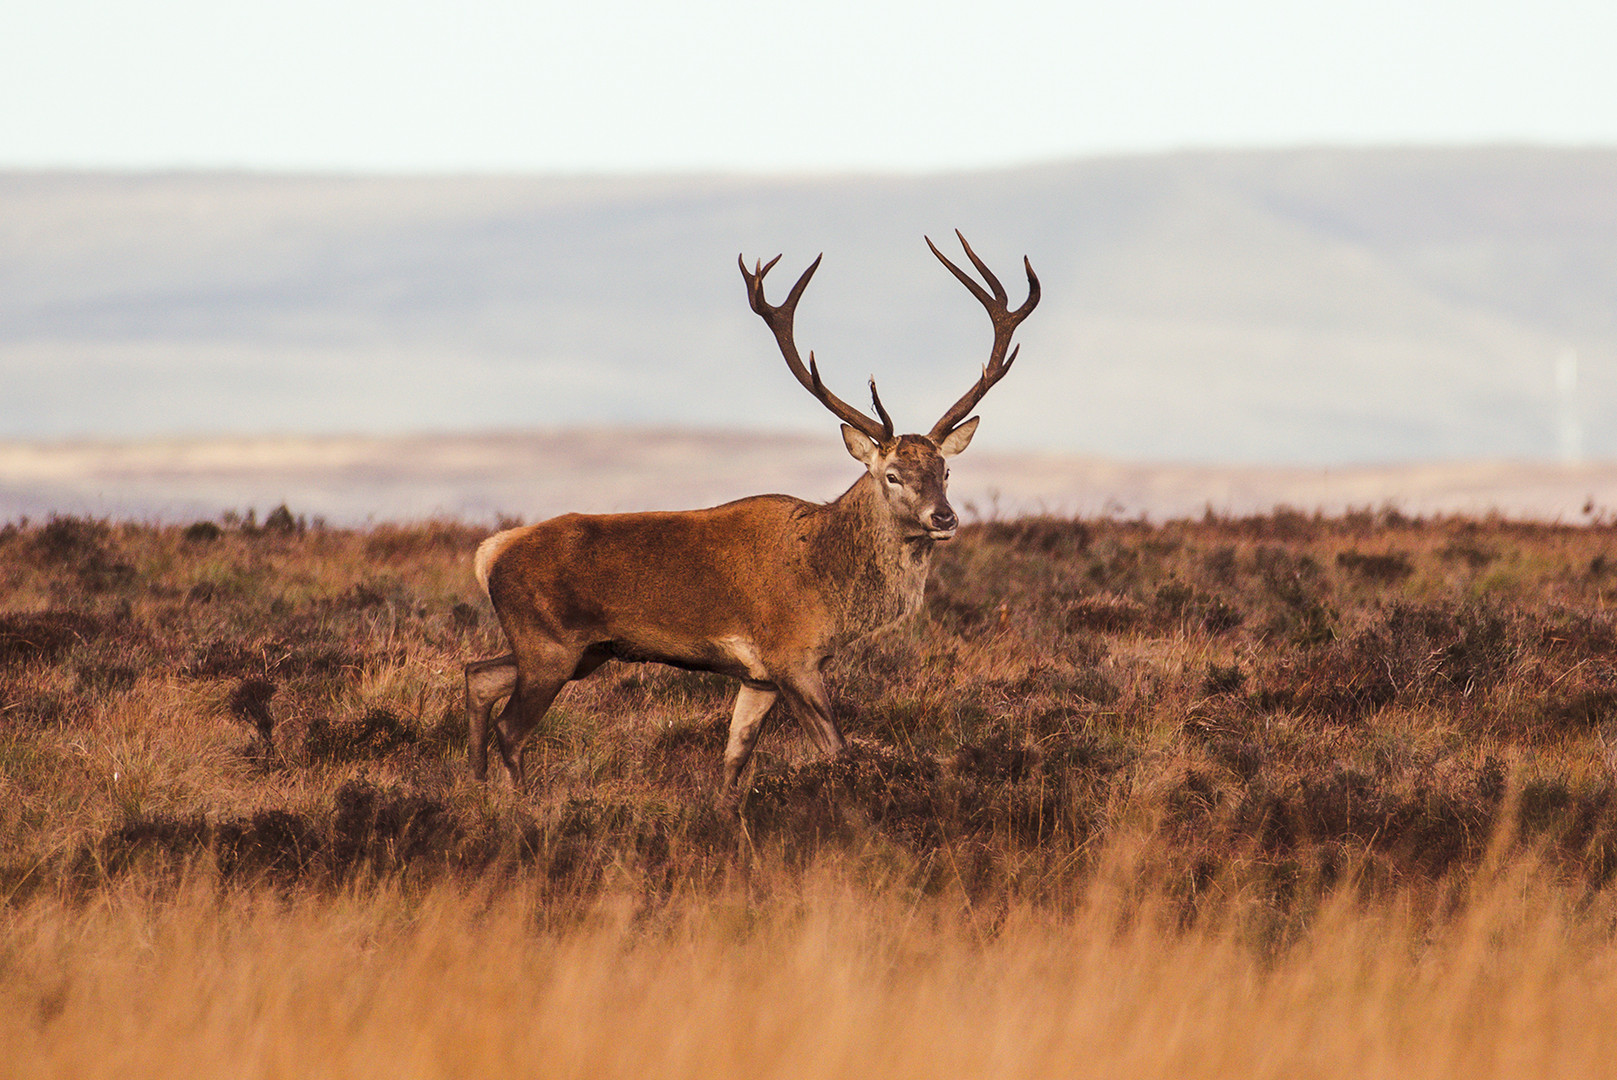 Wildlife_Photography_Course_Stag5.jpg